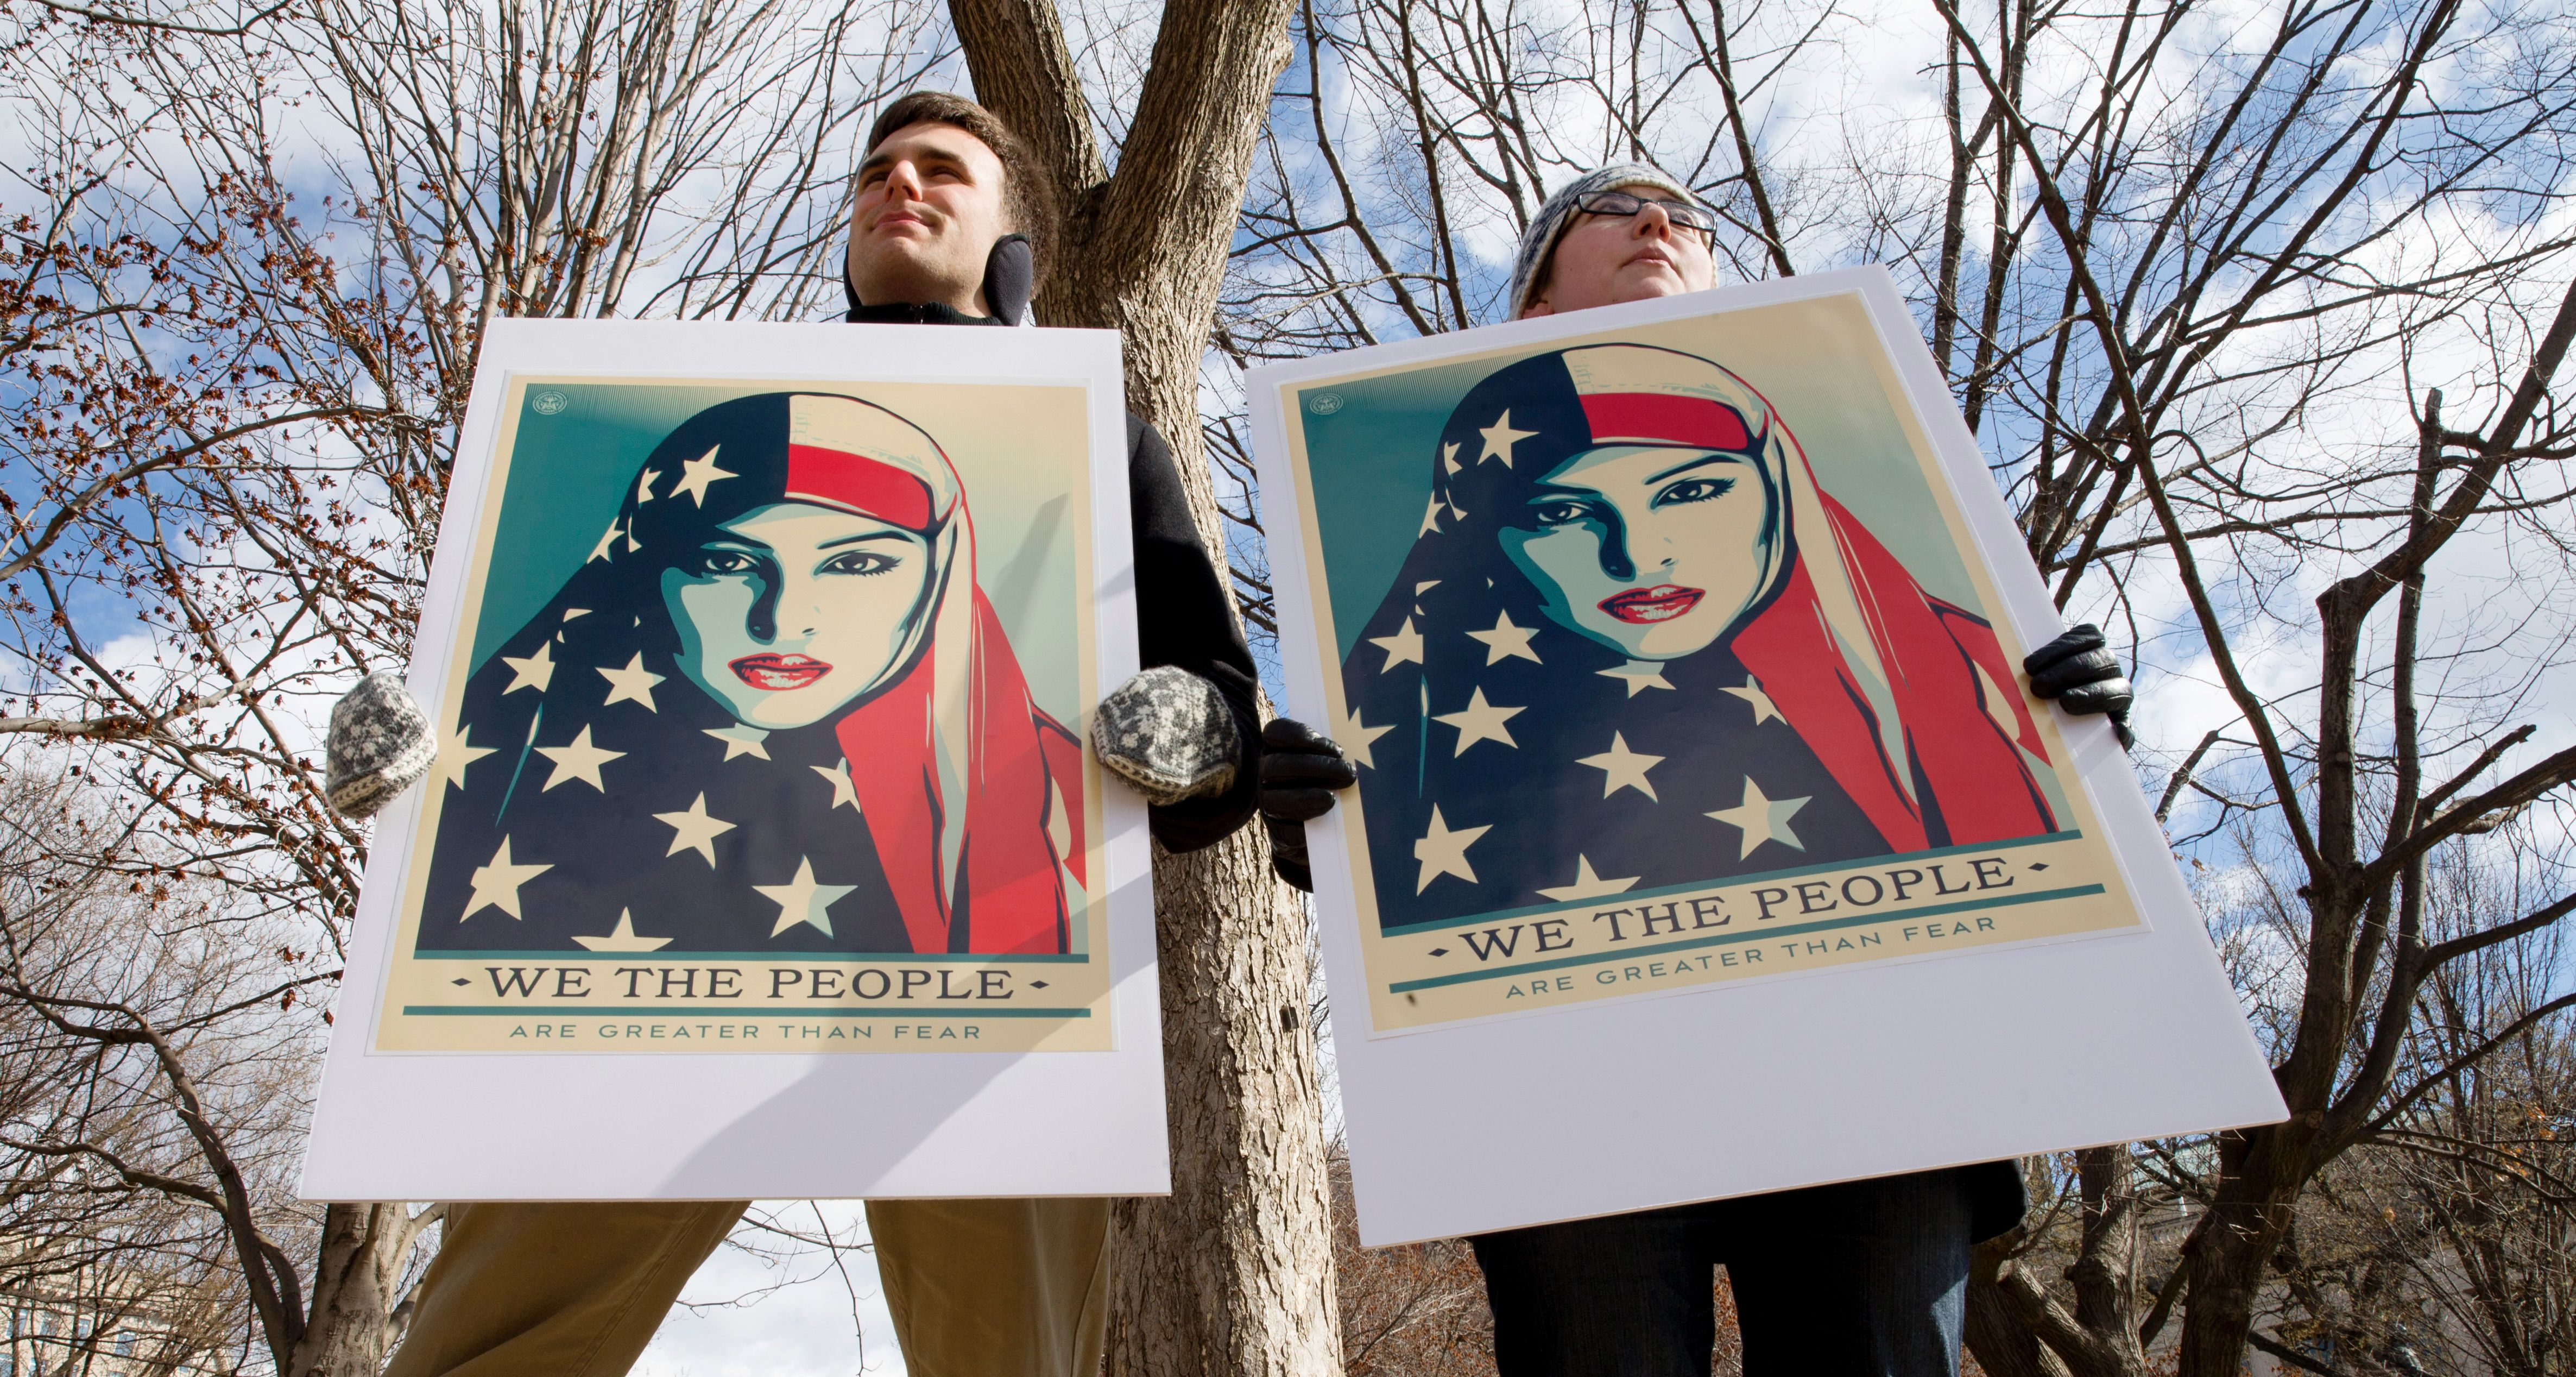 Demonstrators gather near The White House to protest President Donald Trump's travel ban on six Muslim countries on March 11, 2017 in Washington, D.C.